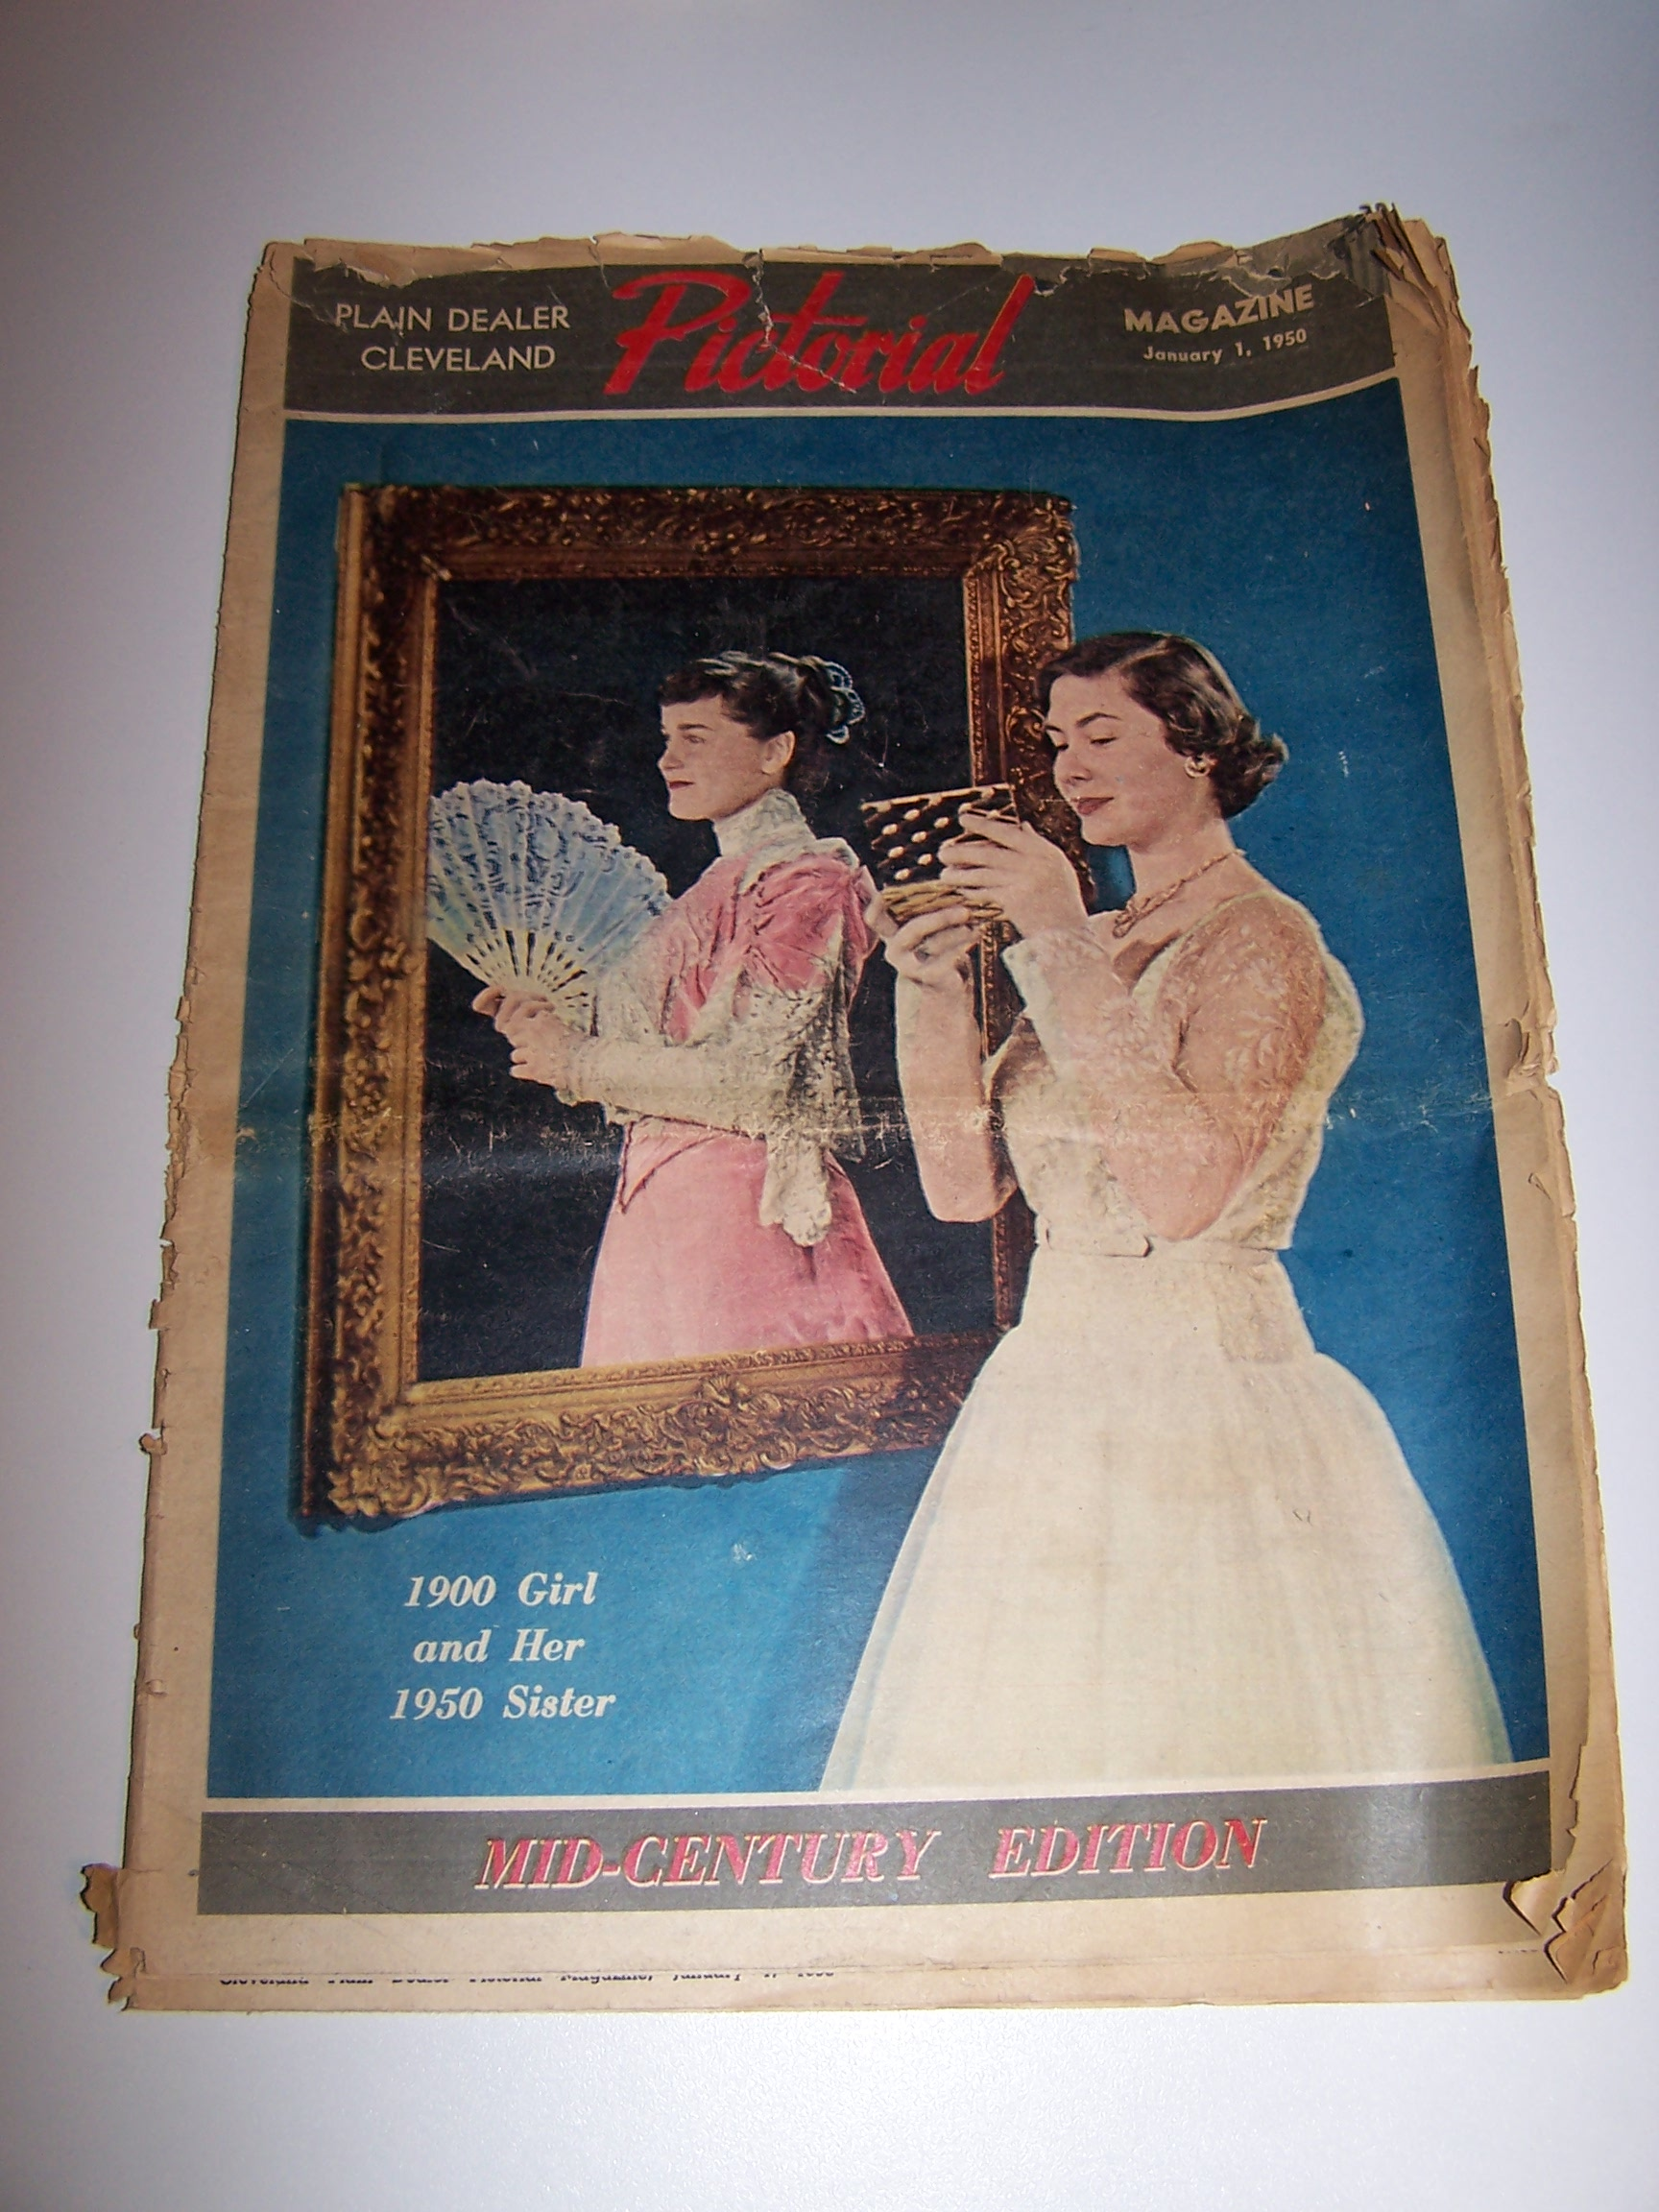 Mid Century Edition Pictorial Magazine, 1950, Cleveland Plain Dealer